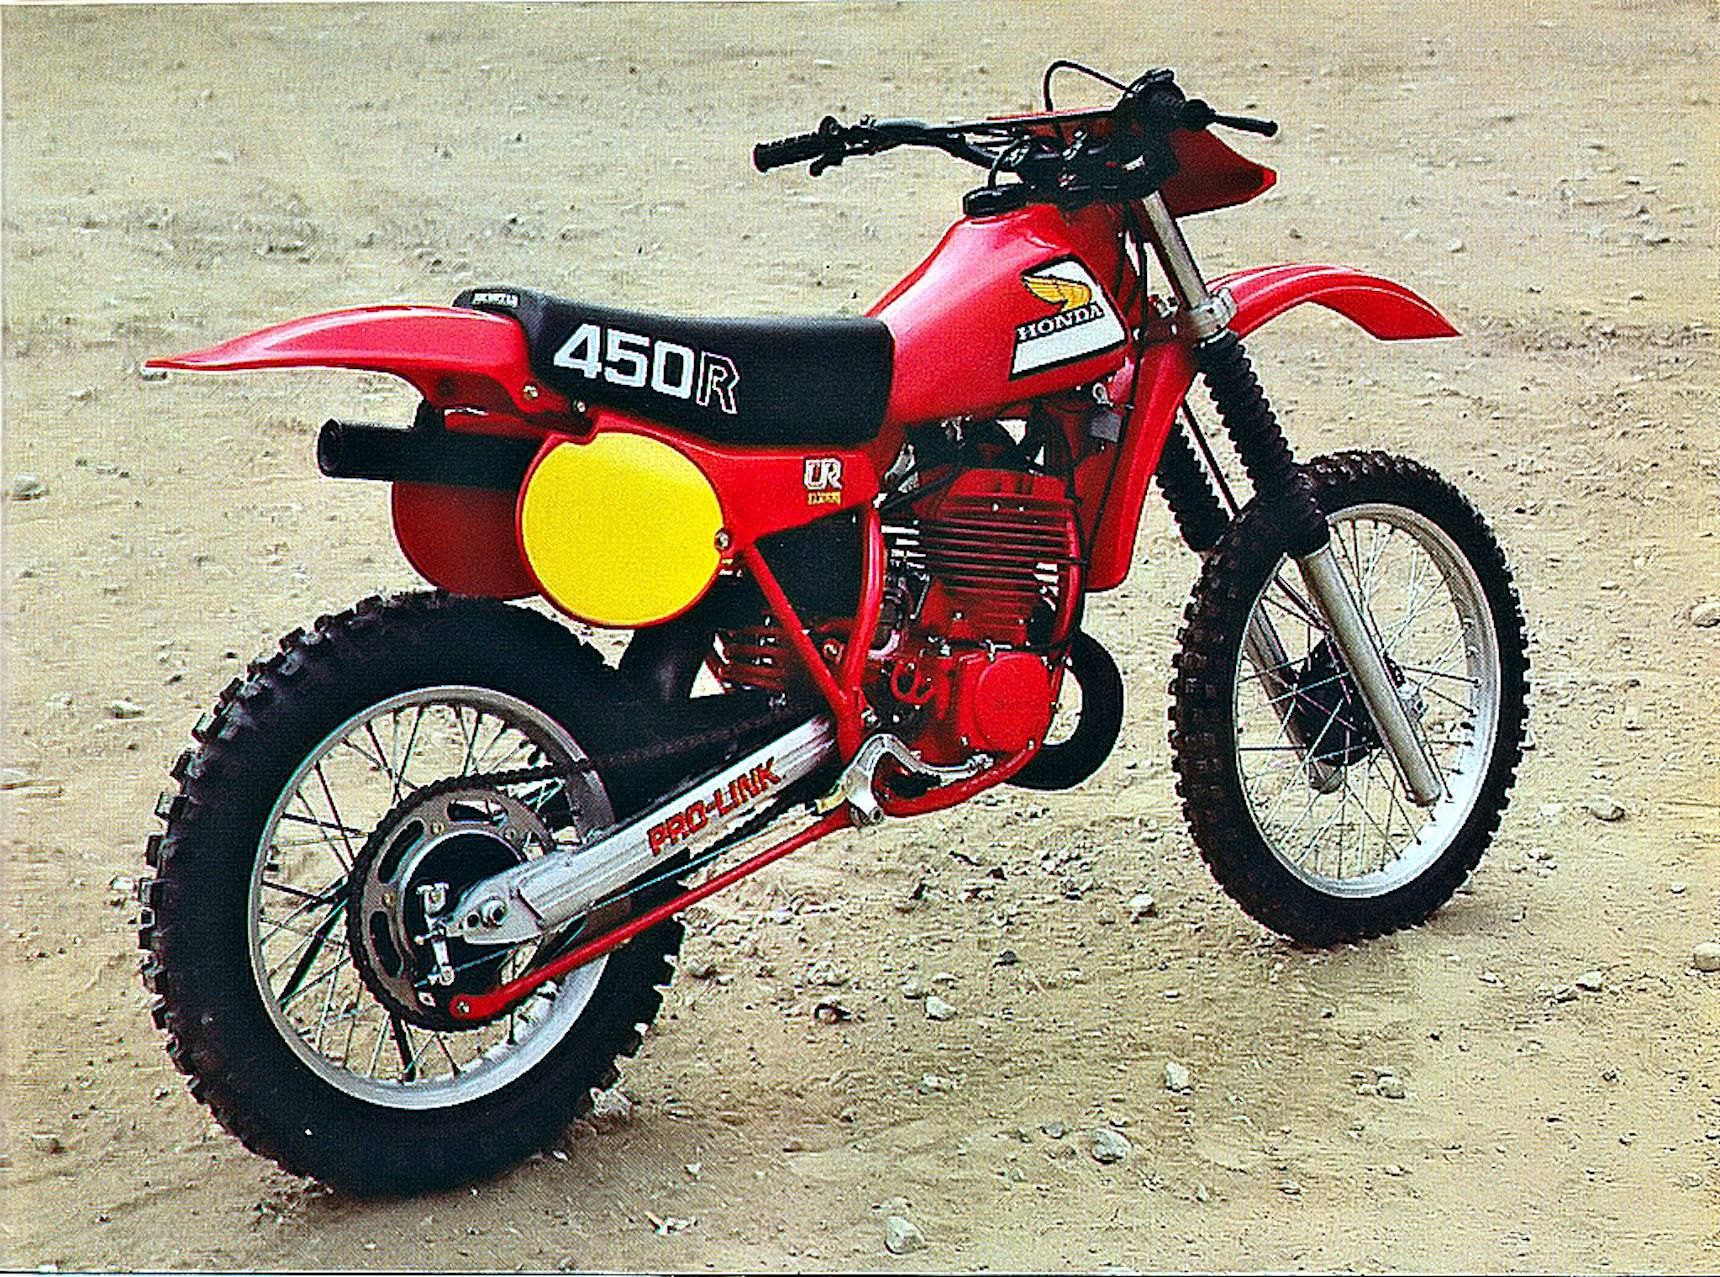 honda cr 450 r elsinore 1981 mx vintage pinterest. Black Bedroom Furniture Sets. Home Design Ideas